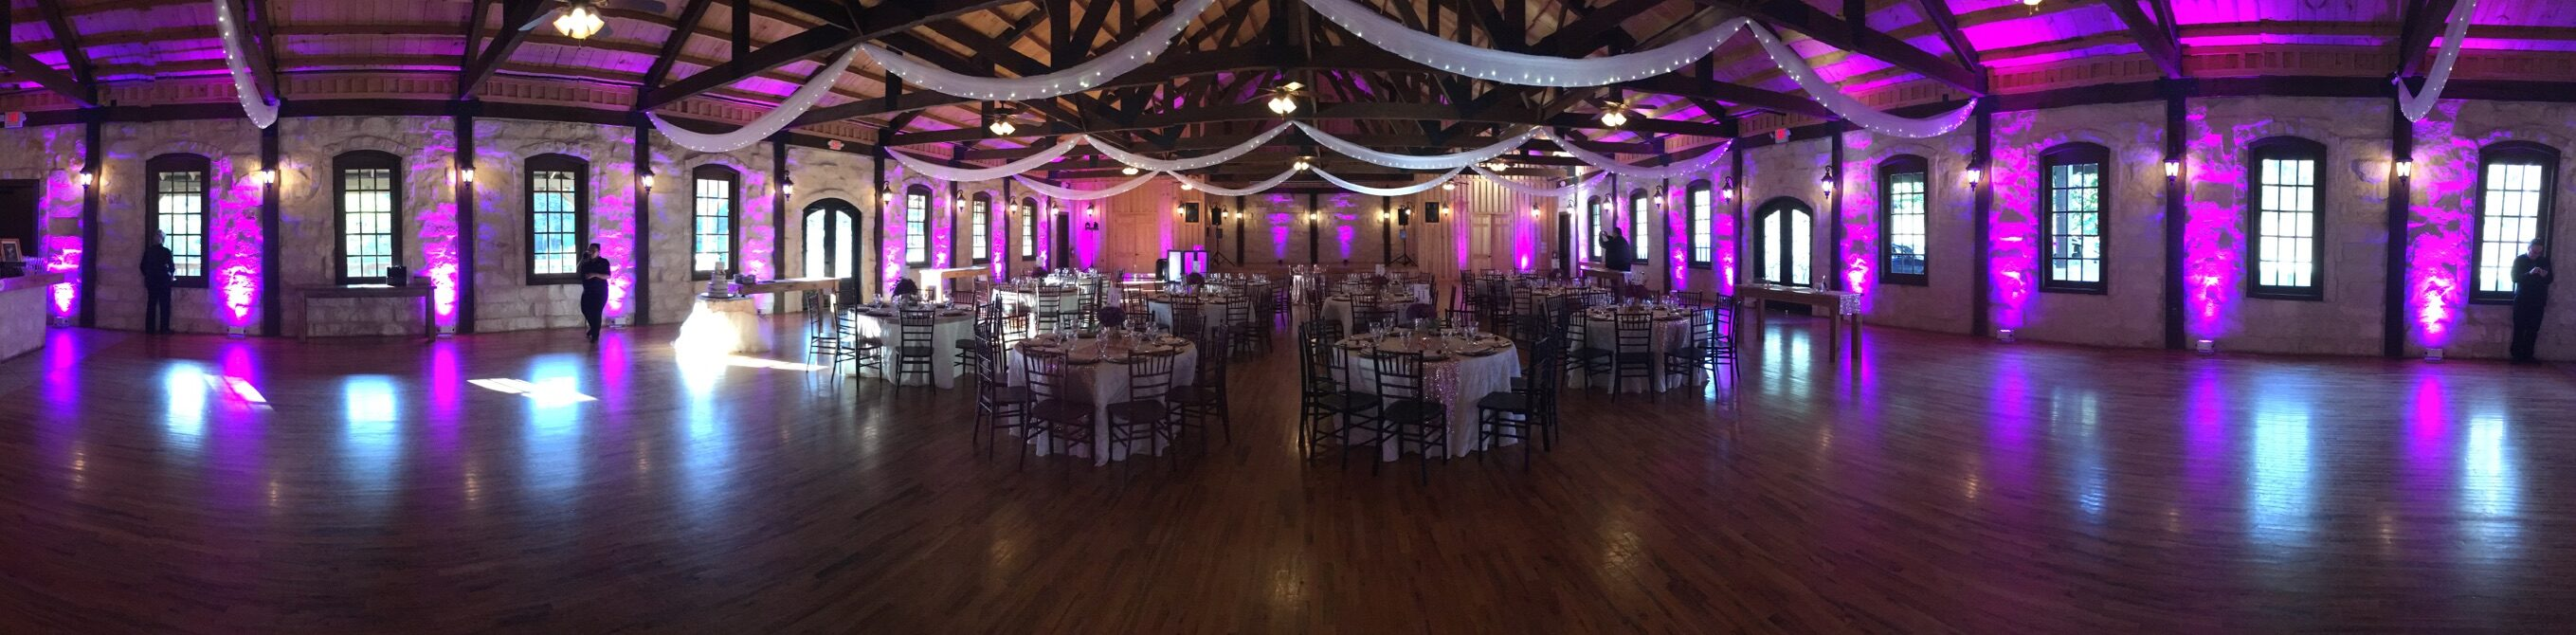 Up Lighting for a Houston Wedding DJ at The Springs Events